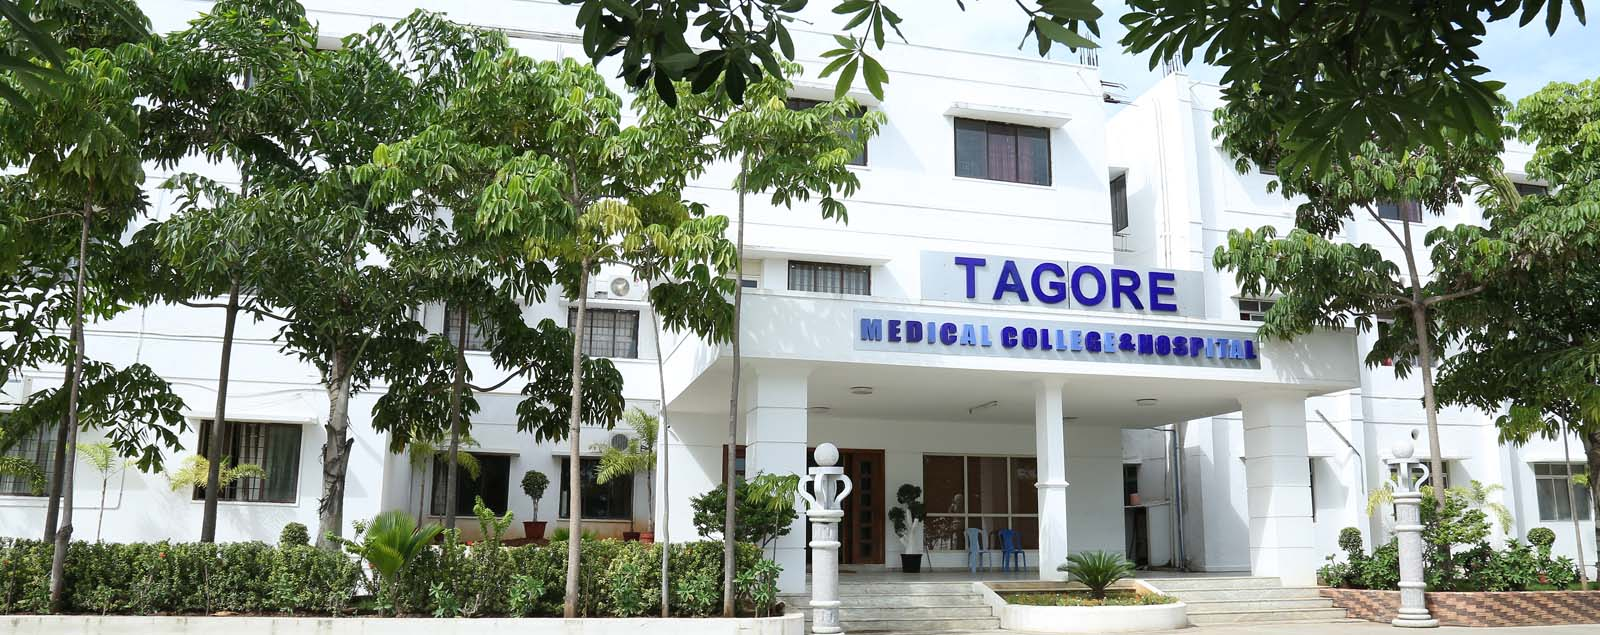 Tagore College Of Nursing Tagore Medical College and Hospital Image